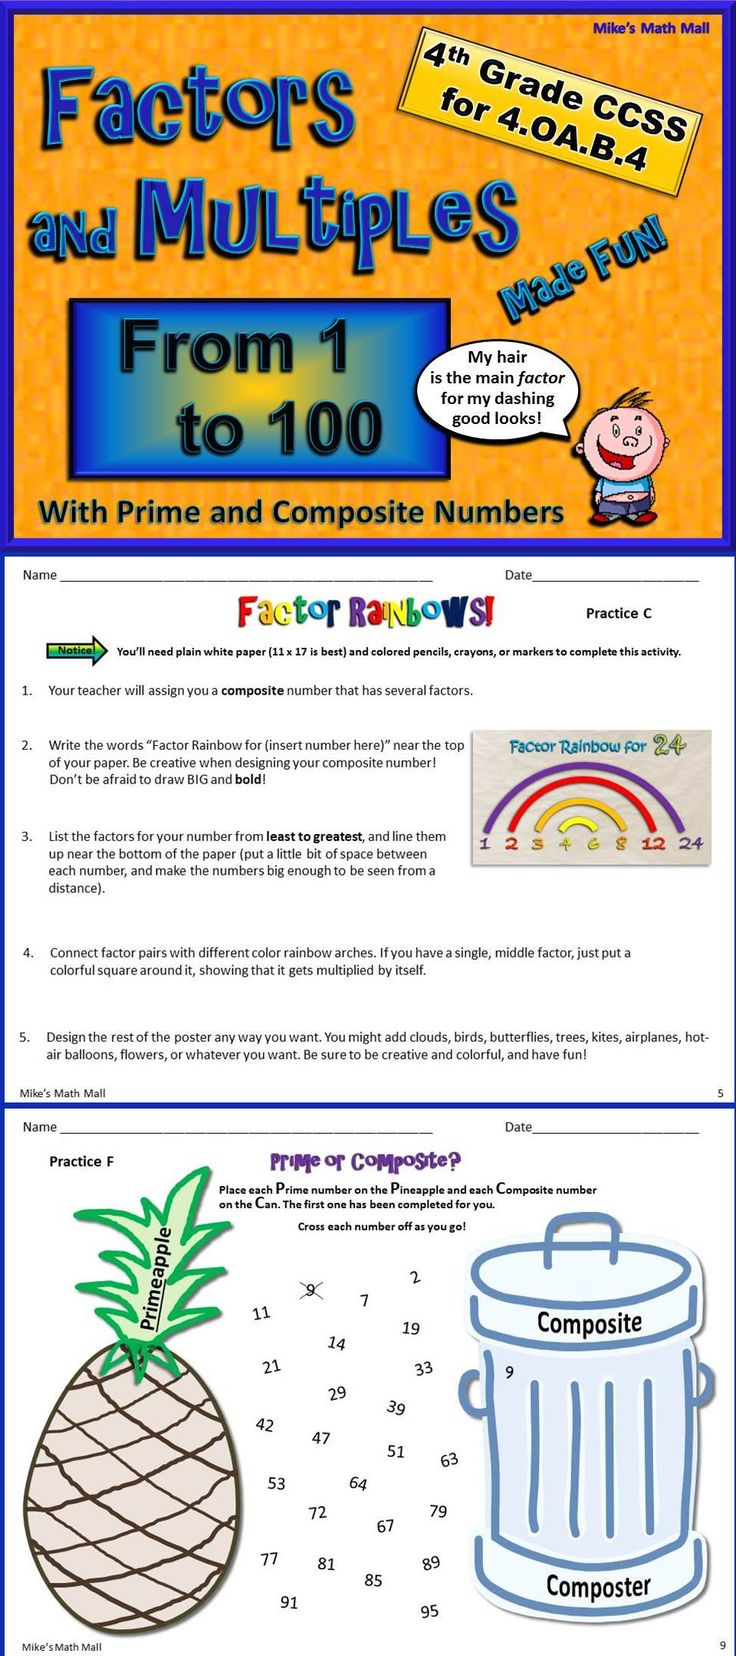 Worksheet List All The Factors Of 100 1000 images about teaching factors multiples on pinterest as a matter of factor this is very fun comprehensive lesson bundle that